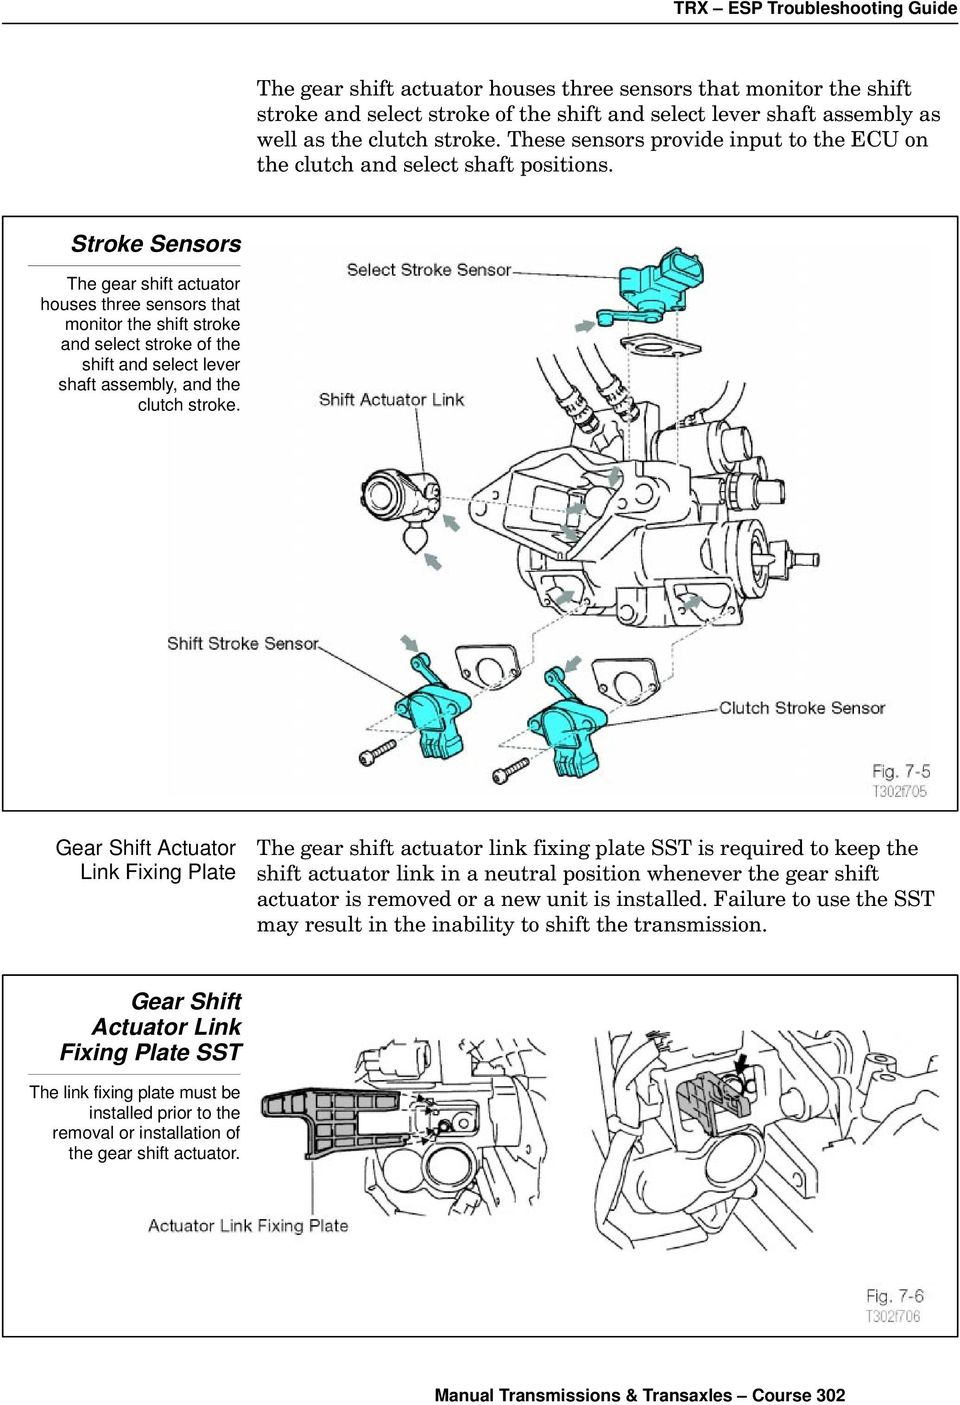 Sequential Manual Transmission Pdf Clutch Diagram Linkage Left Drive Stroke Sensors The Gear Shift Actuator Houses Three That Monitor And Select